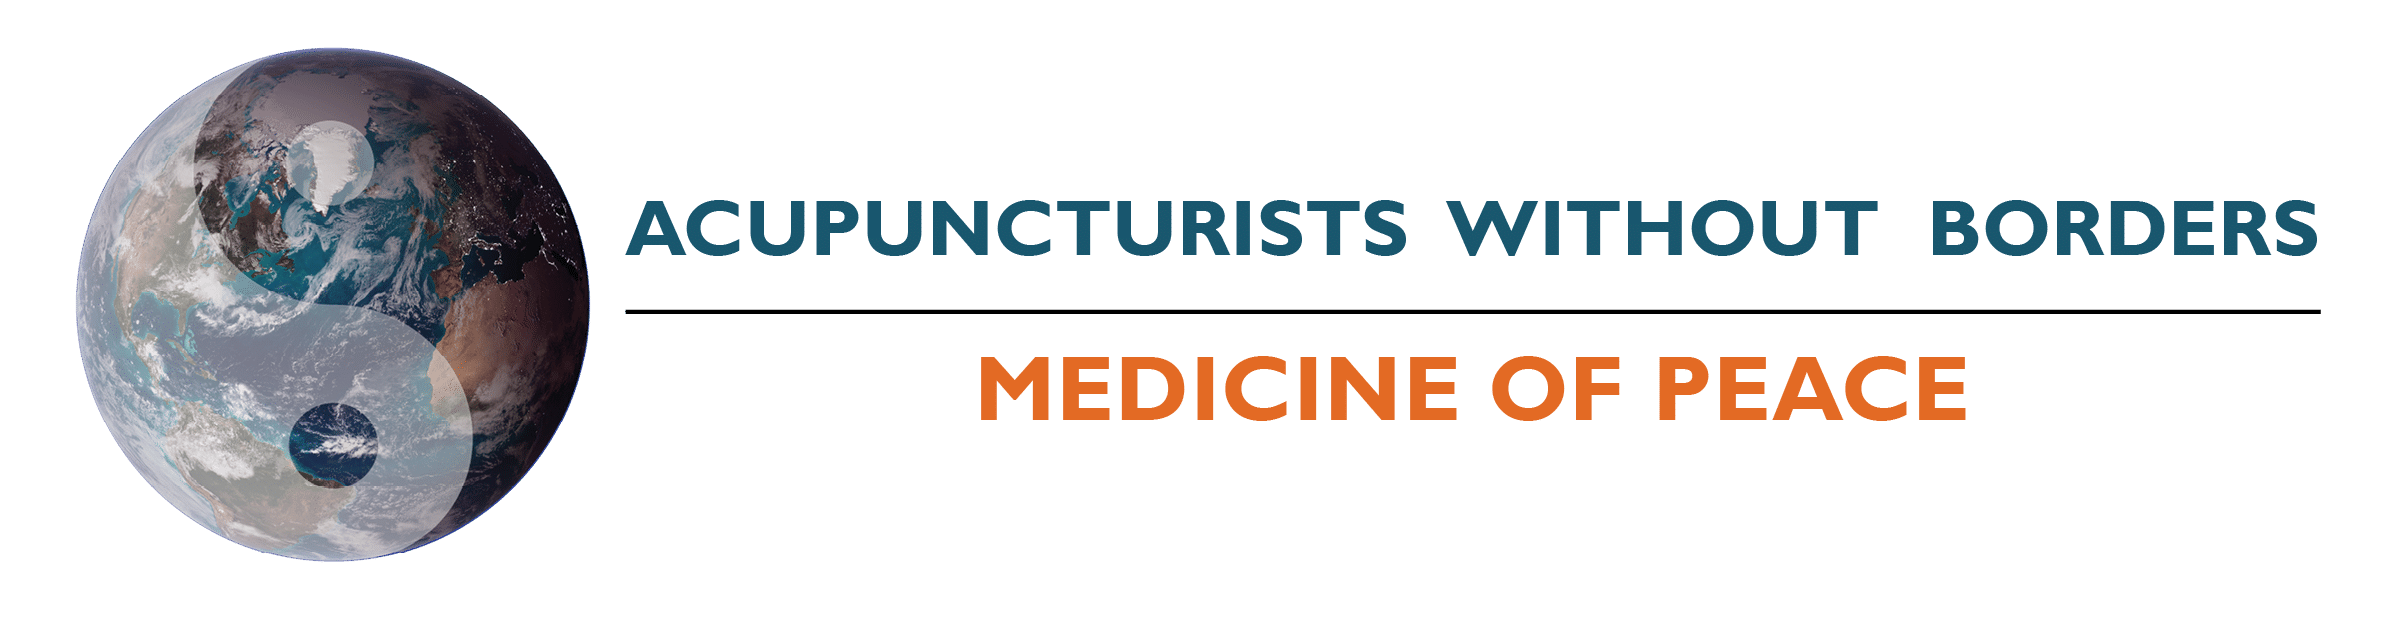 Acupuncturists Without Borders